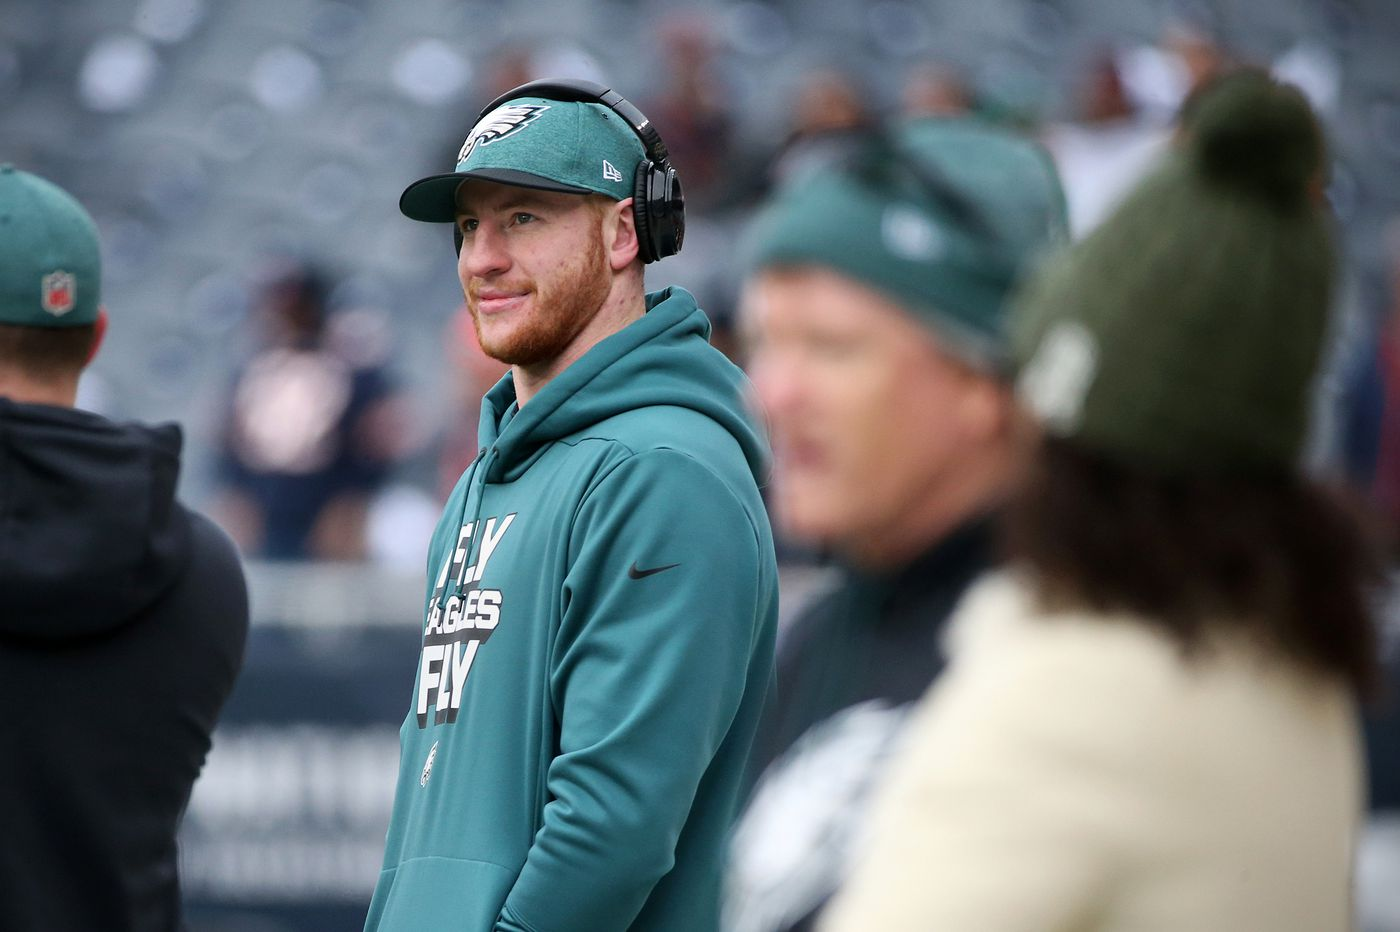 If Carson Wentz is healthy, should he be Nick Foles' backup for the Eagles' playoff run? | Jeff McLane